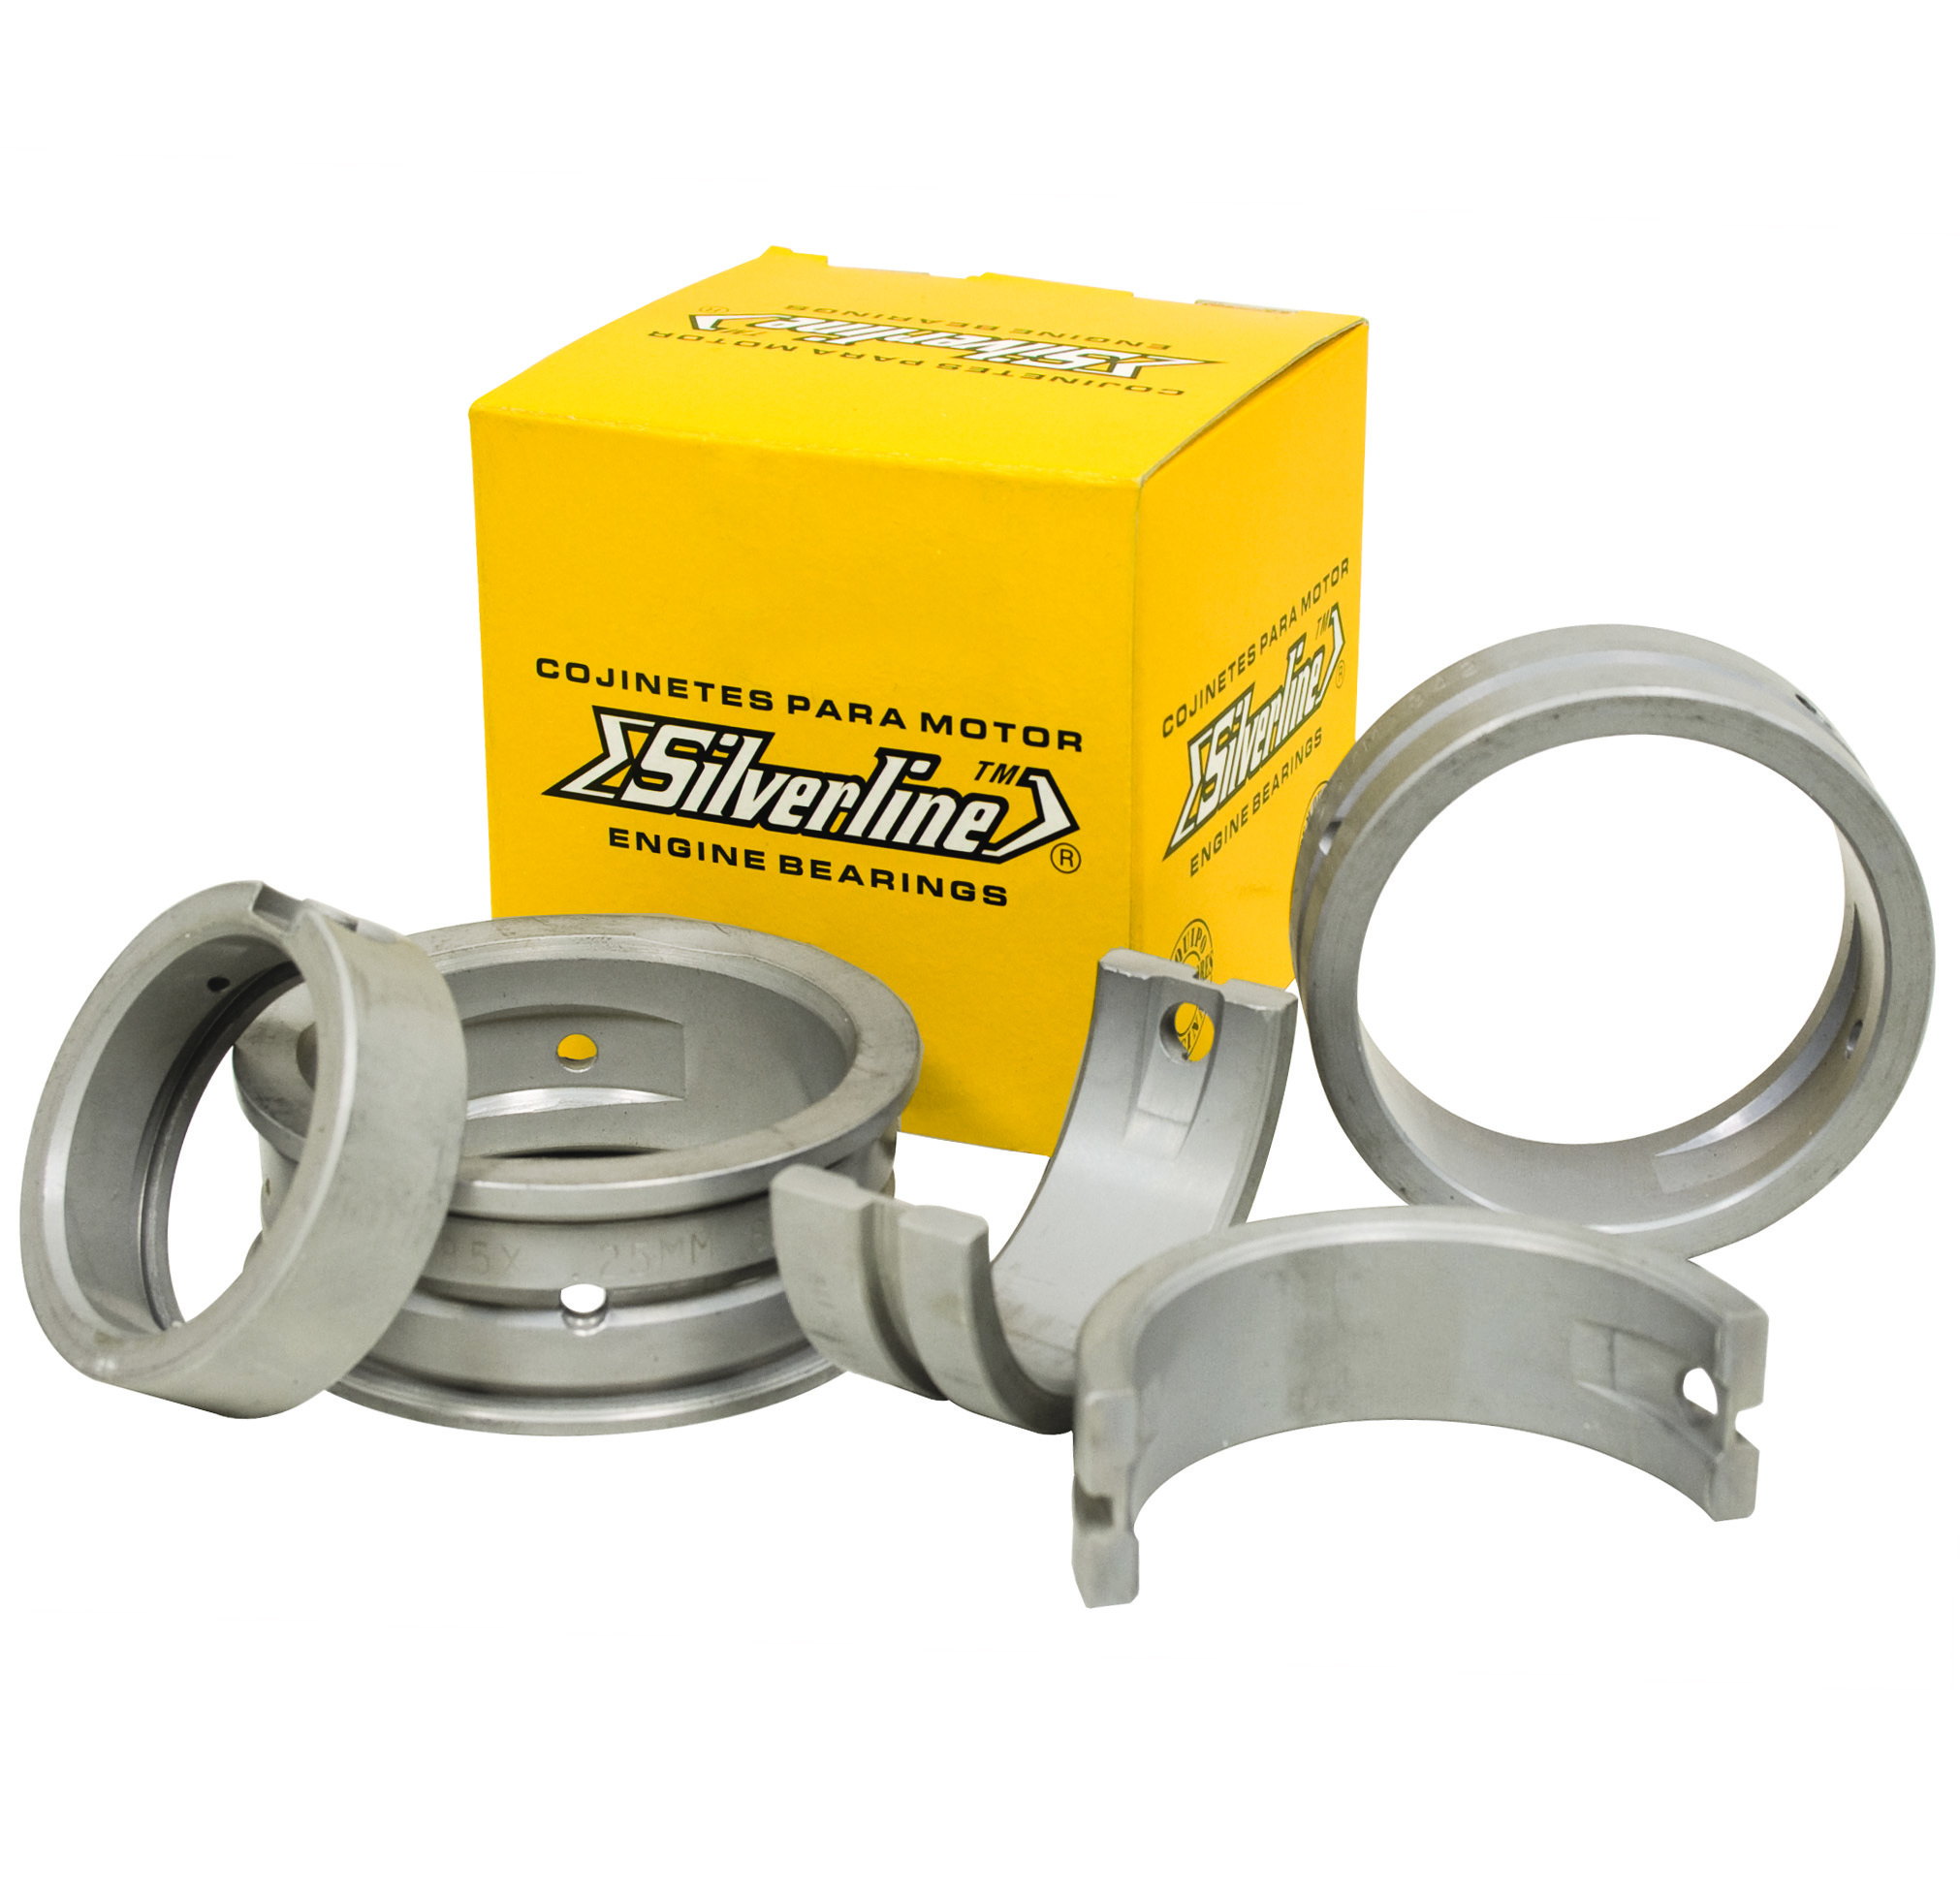 Vw Crankshaft Main Bearings